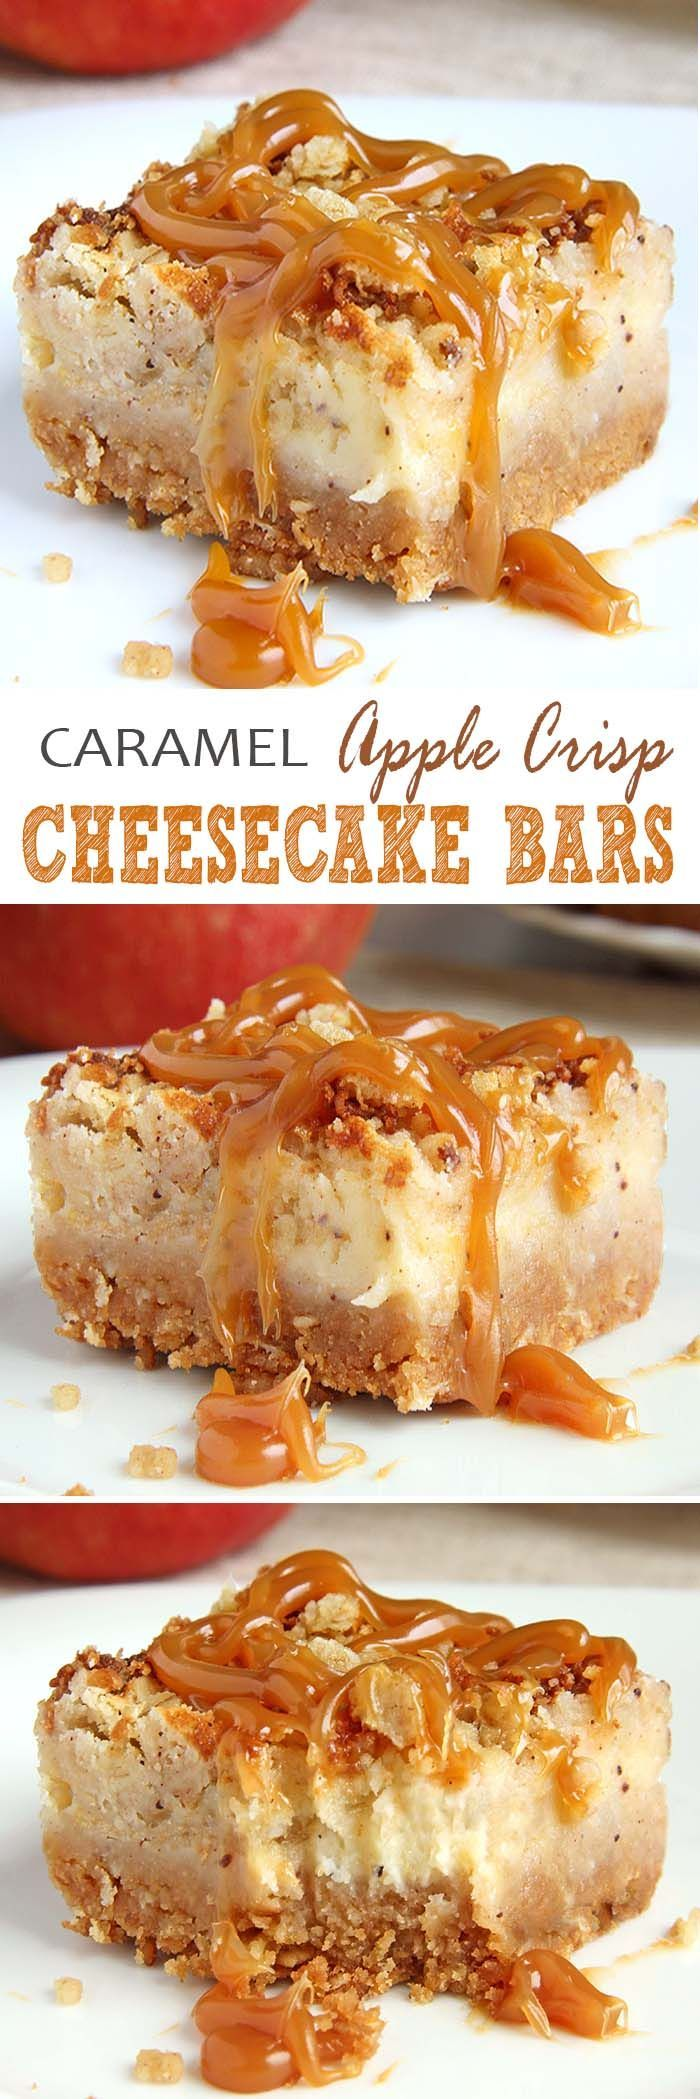 These Caramel Apple Crisp Cheesecake Bars are ideal choice in the autumn season, but also during holidays, which are knocking on the door. (Bake Cheesecake Bars)